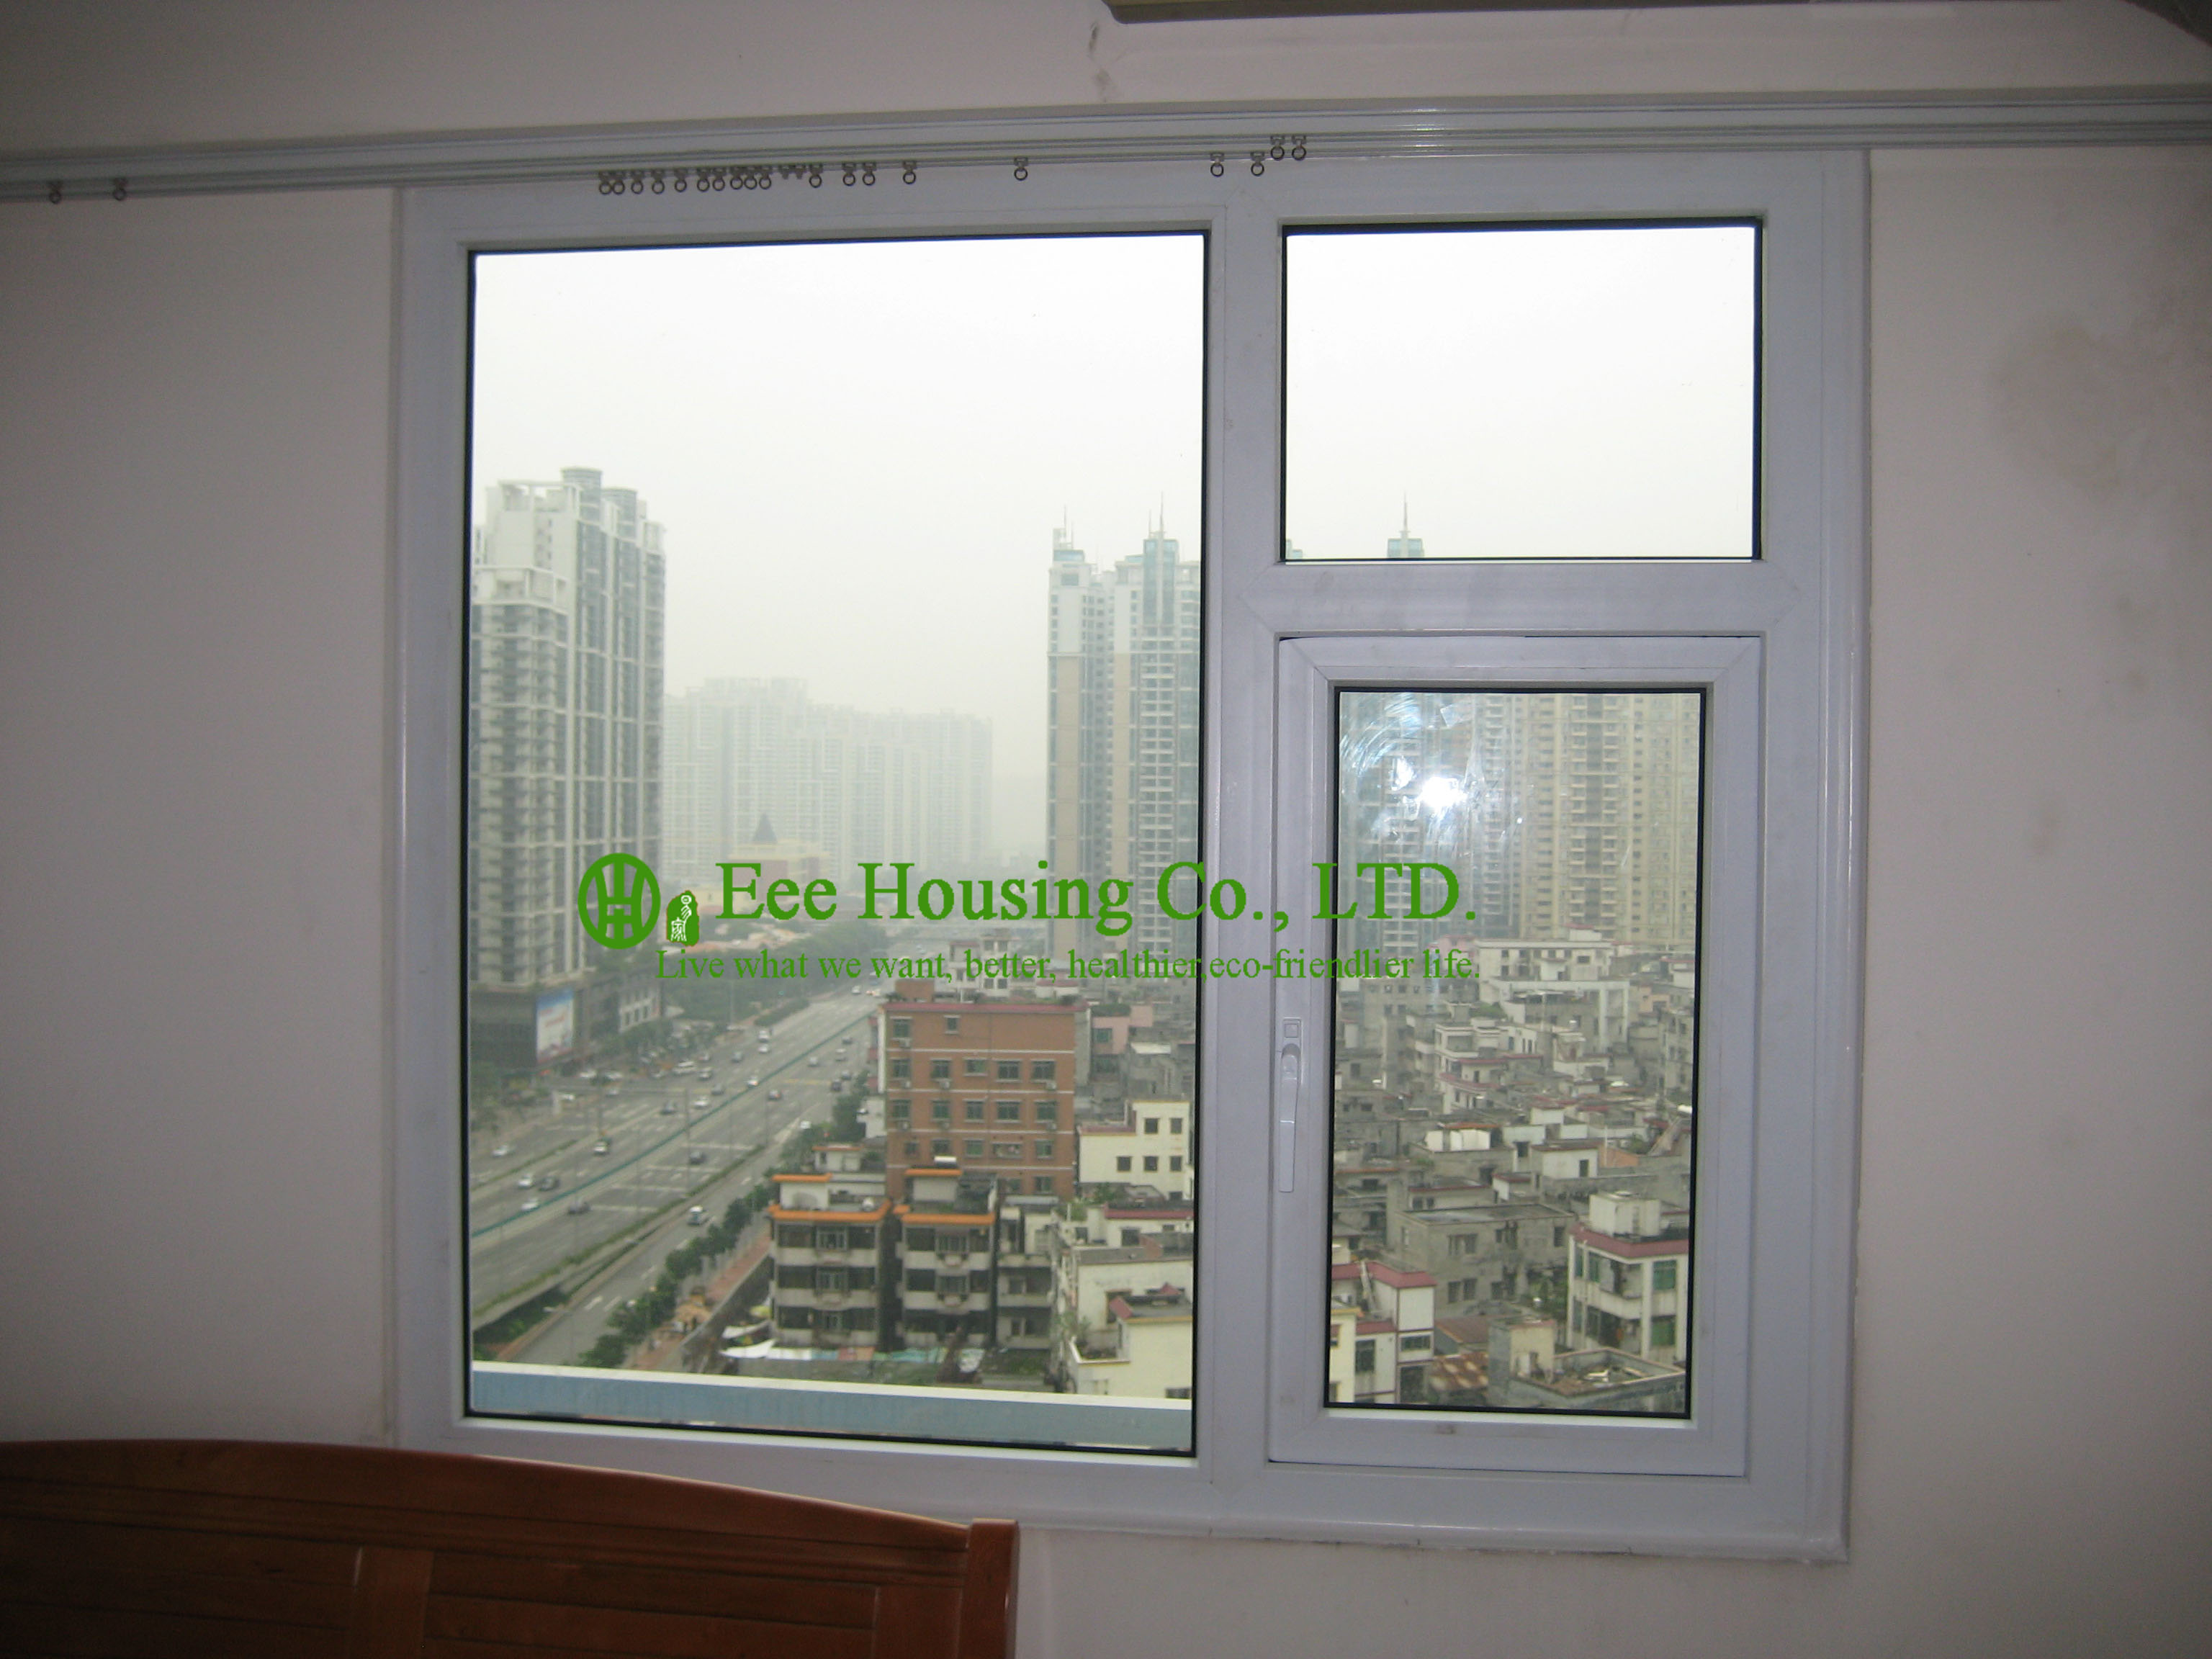 Soundproof windows - Soundproof Windows 70